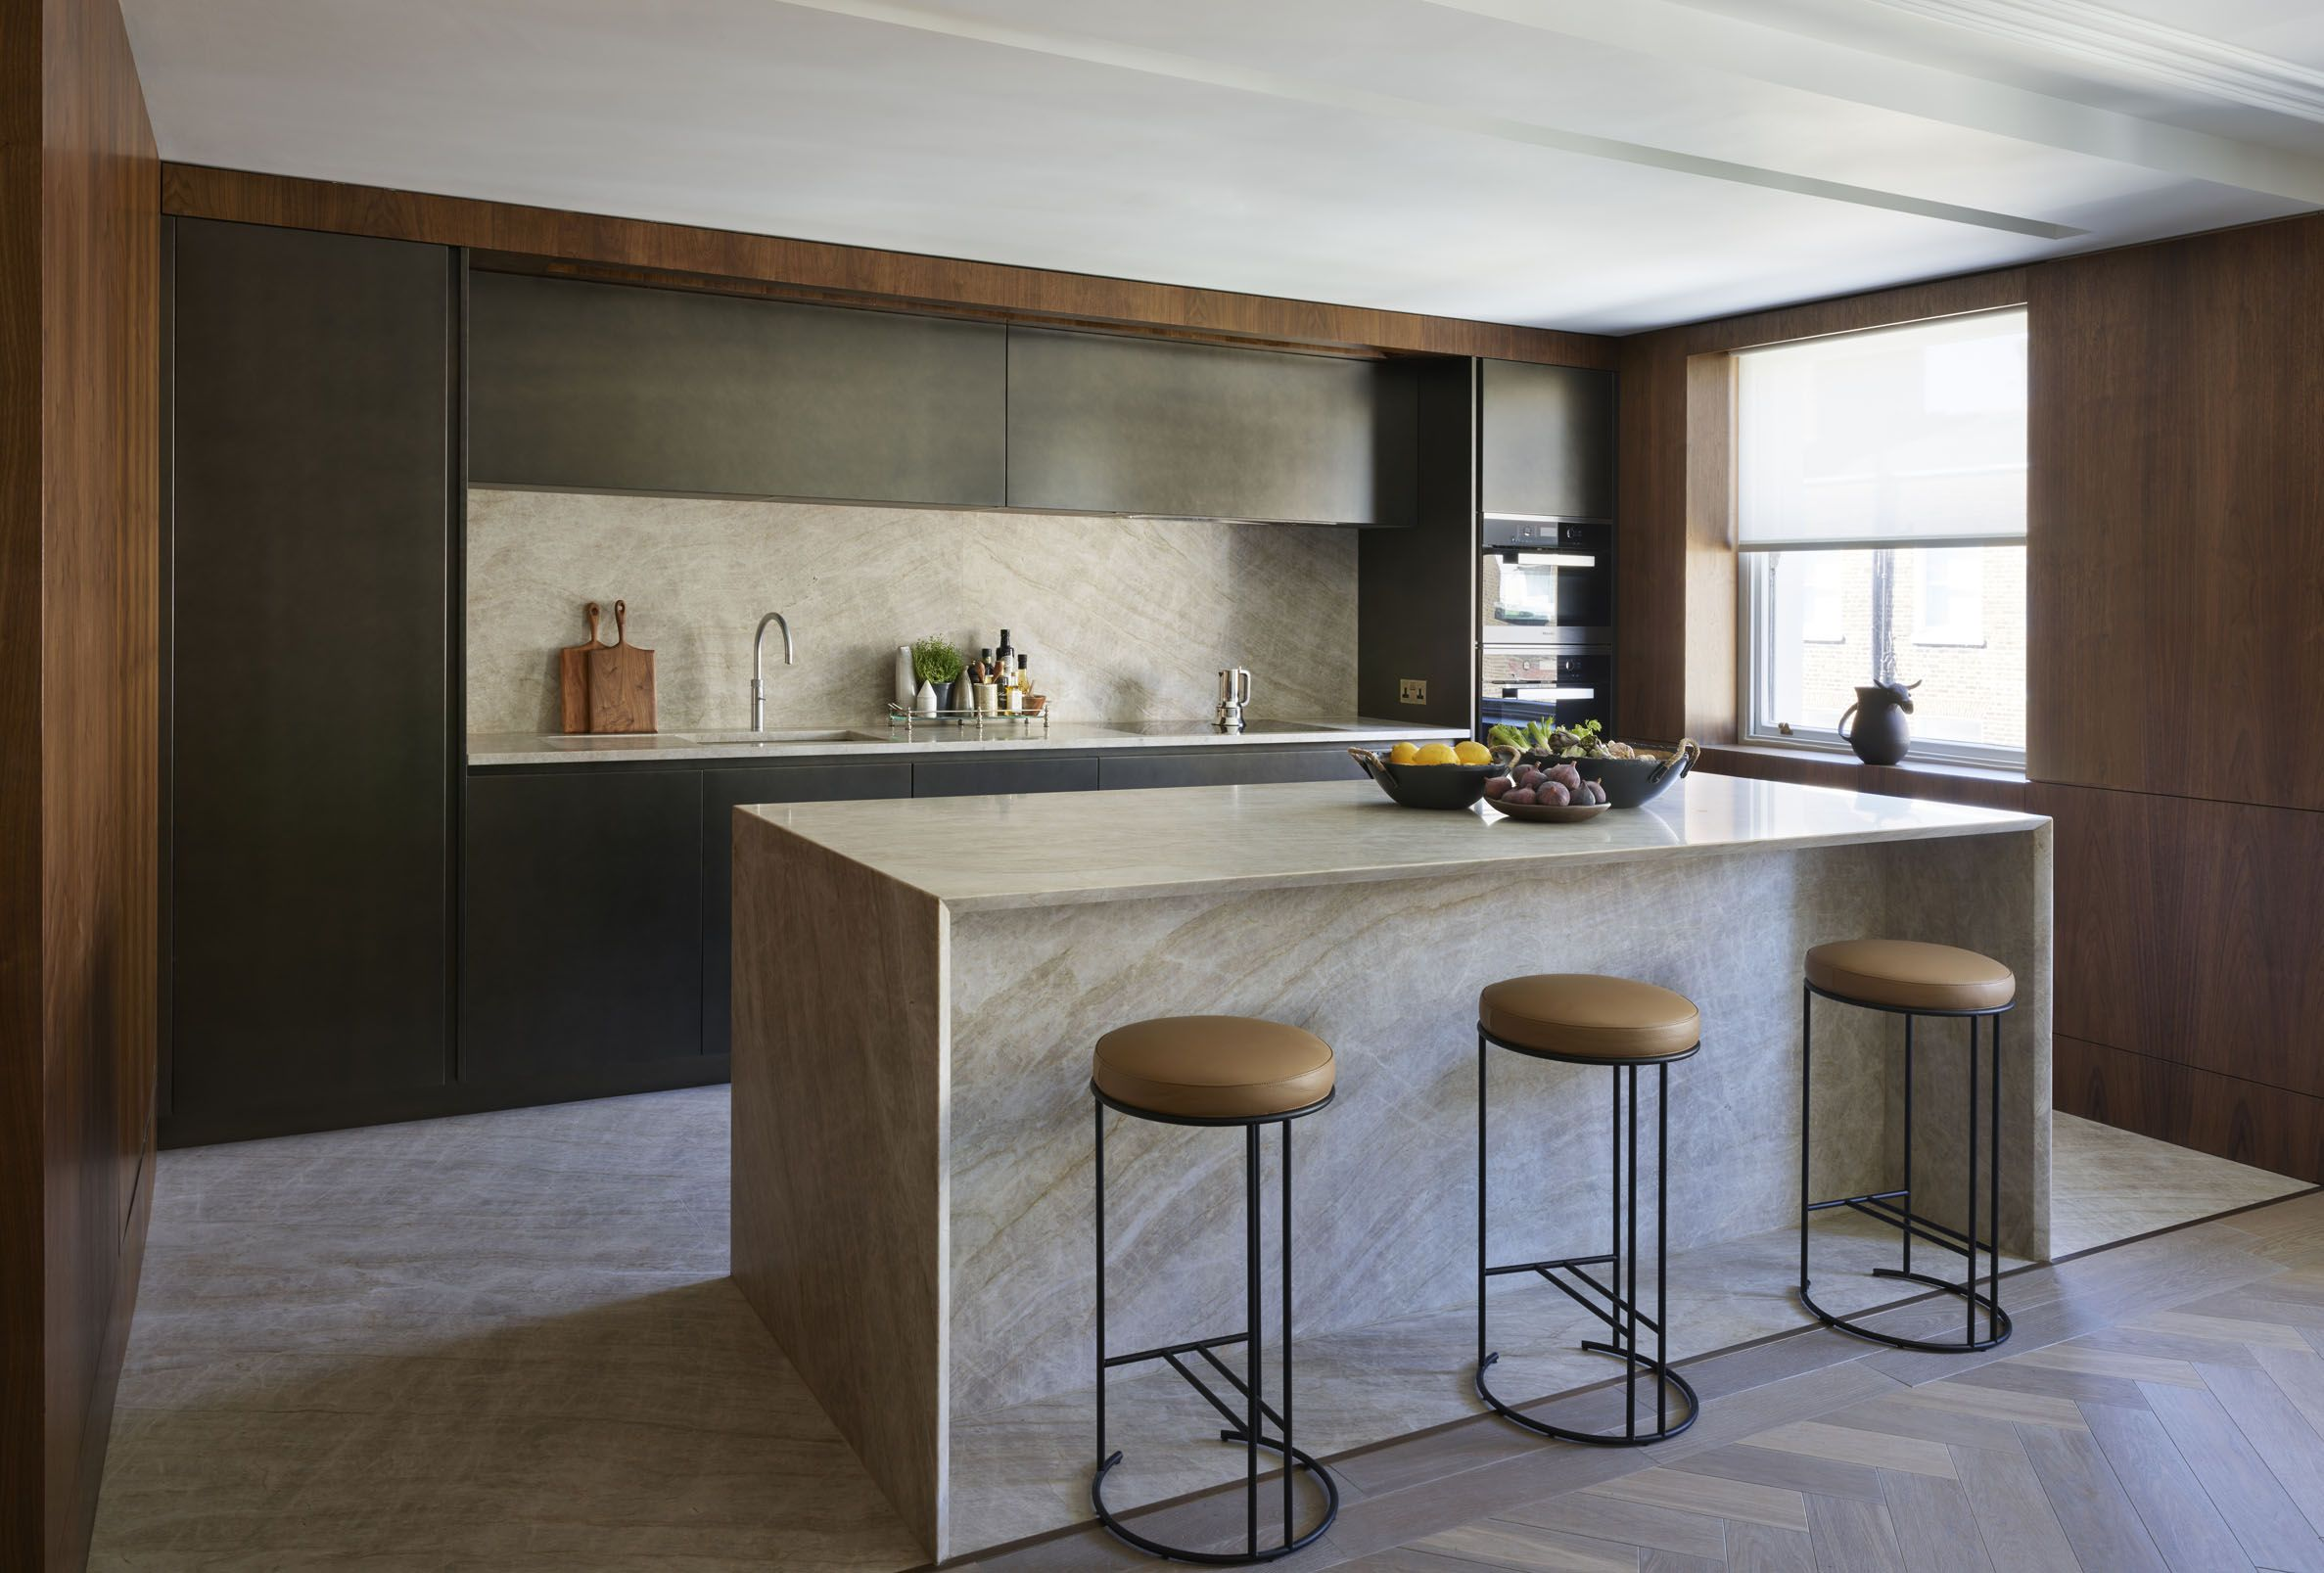 Designed by Vabel for the penthouse apartment of an